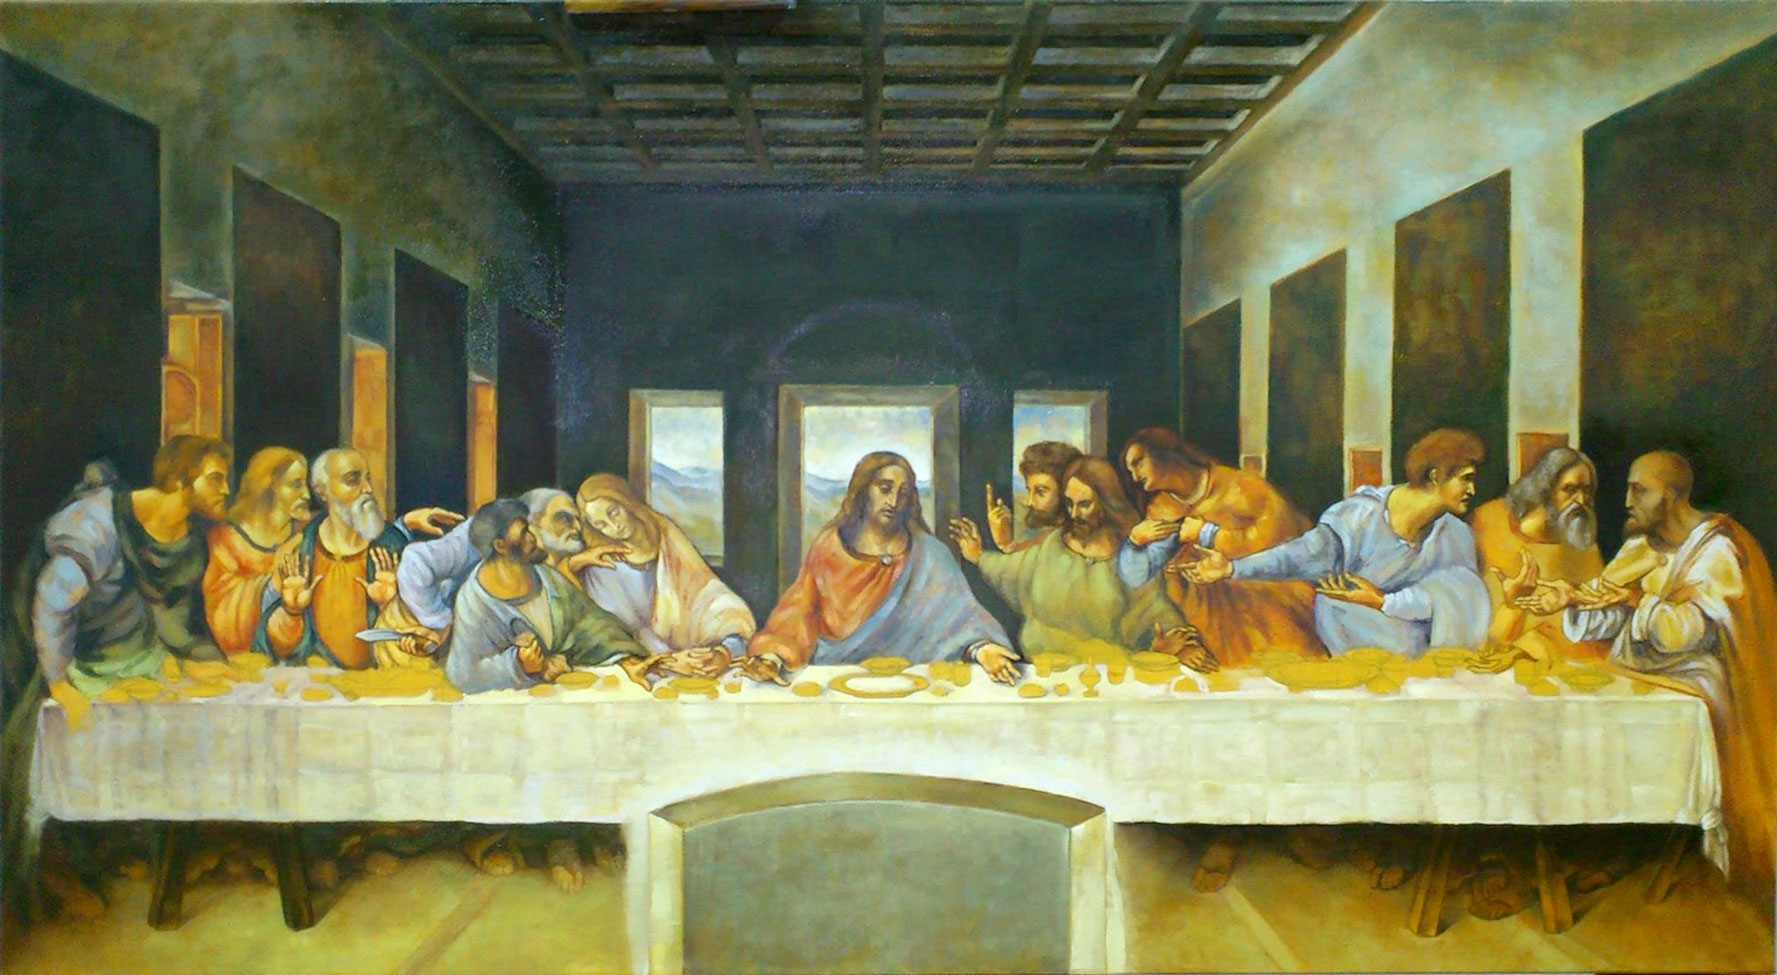 fine art - last supper - original oil painting on canvasartist